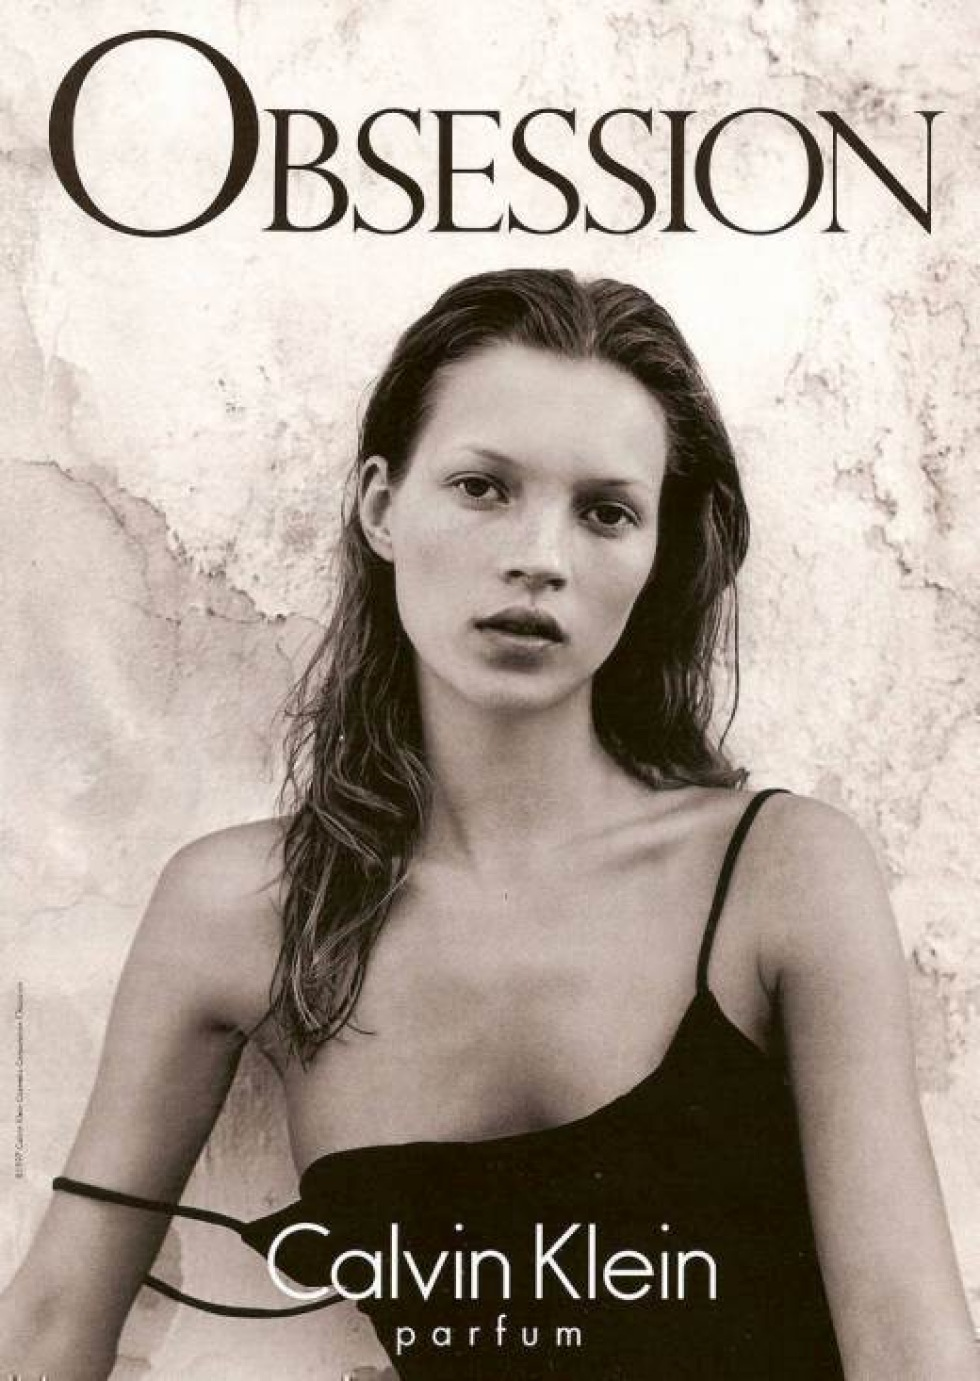 Kate Moss in 1990